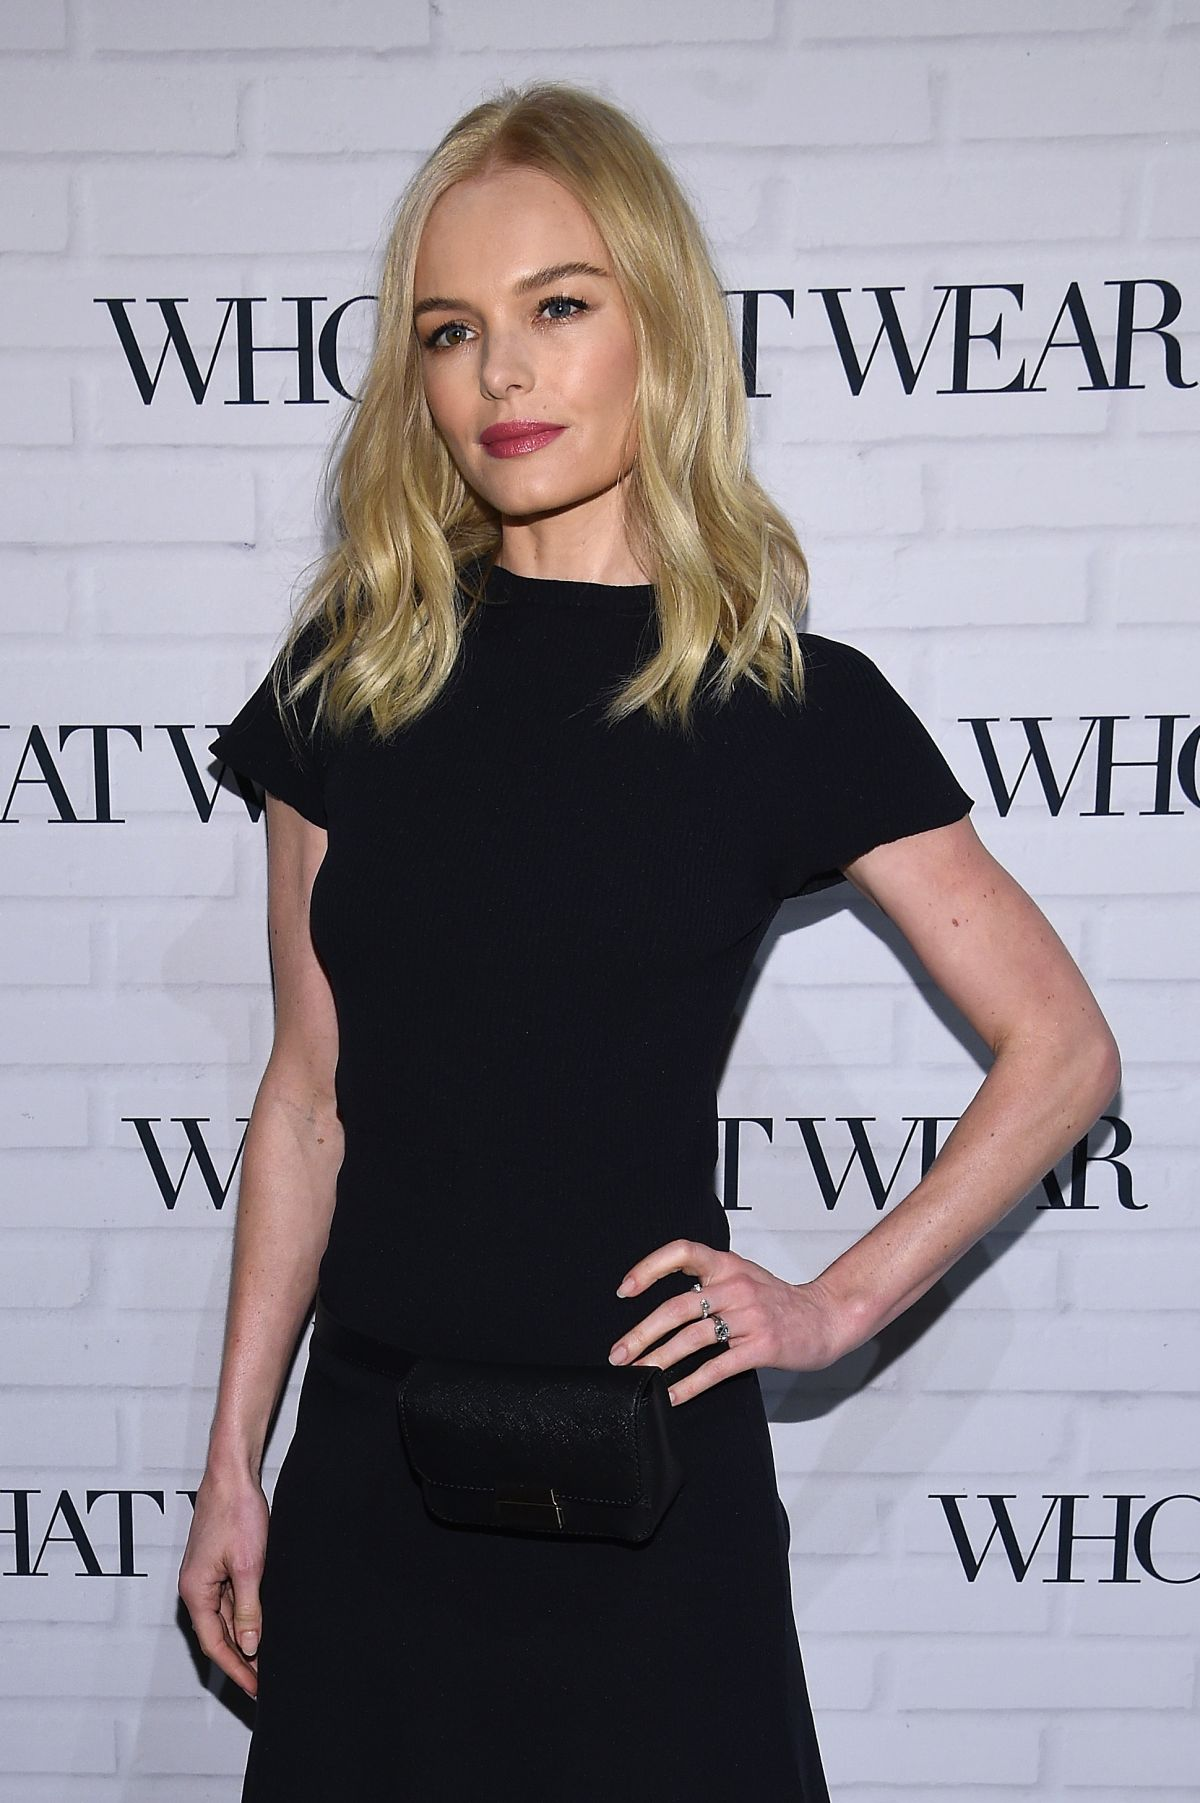 KATE BOSWORTH at Who What Wear x Target Launch Party in New York 01/27/2016